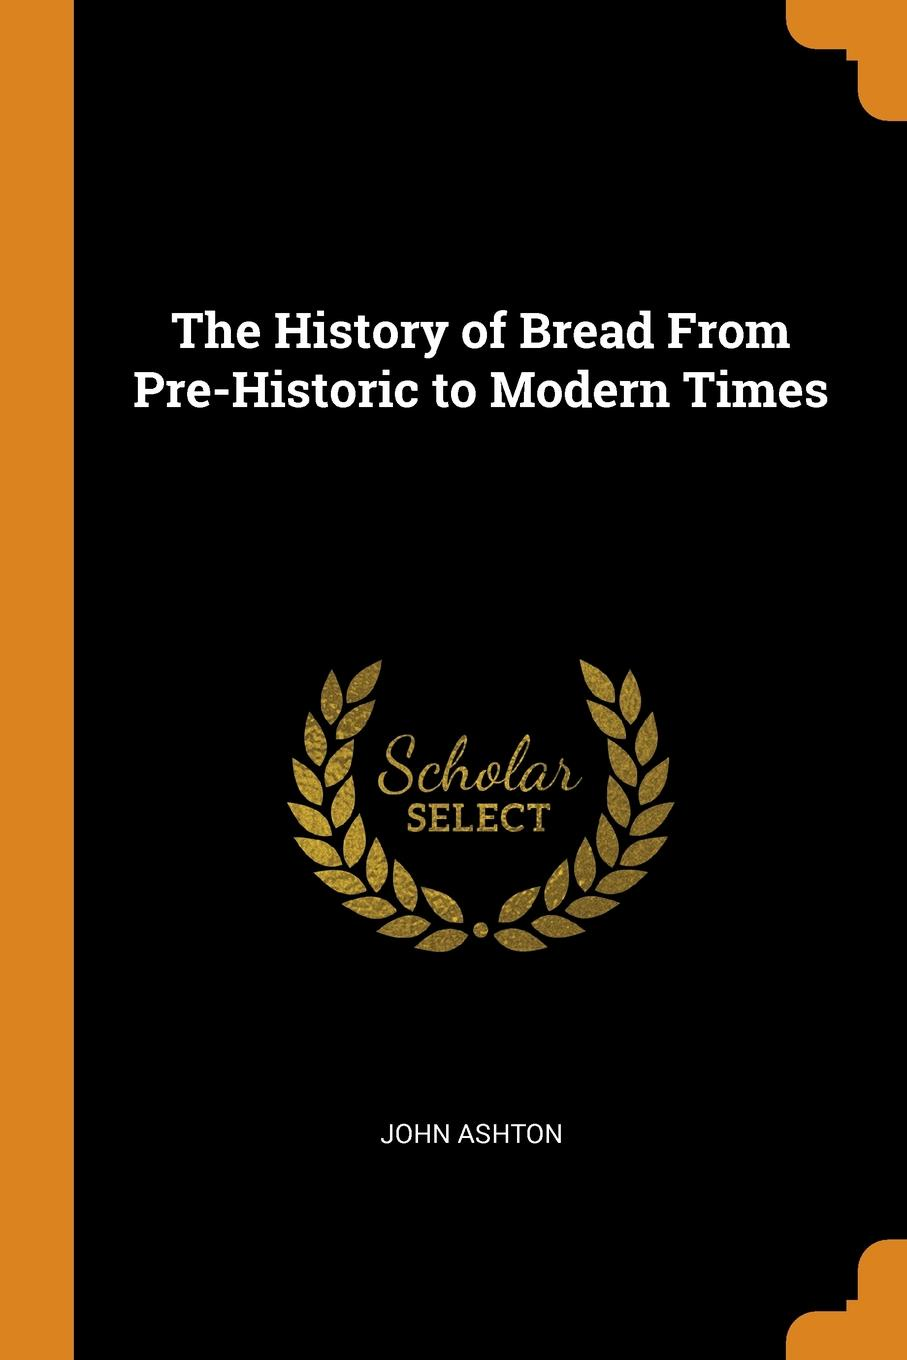 John Ashton The History of Bread From Pre-Historic to Modern Times